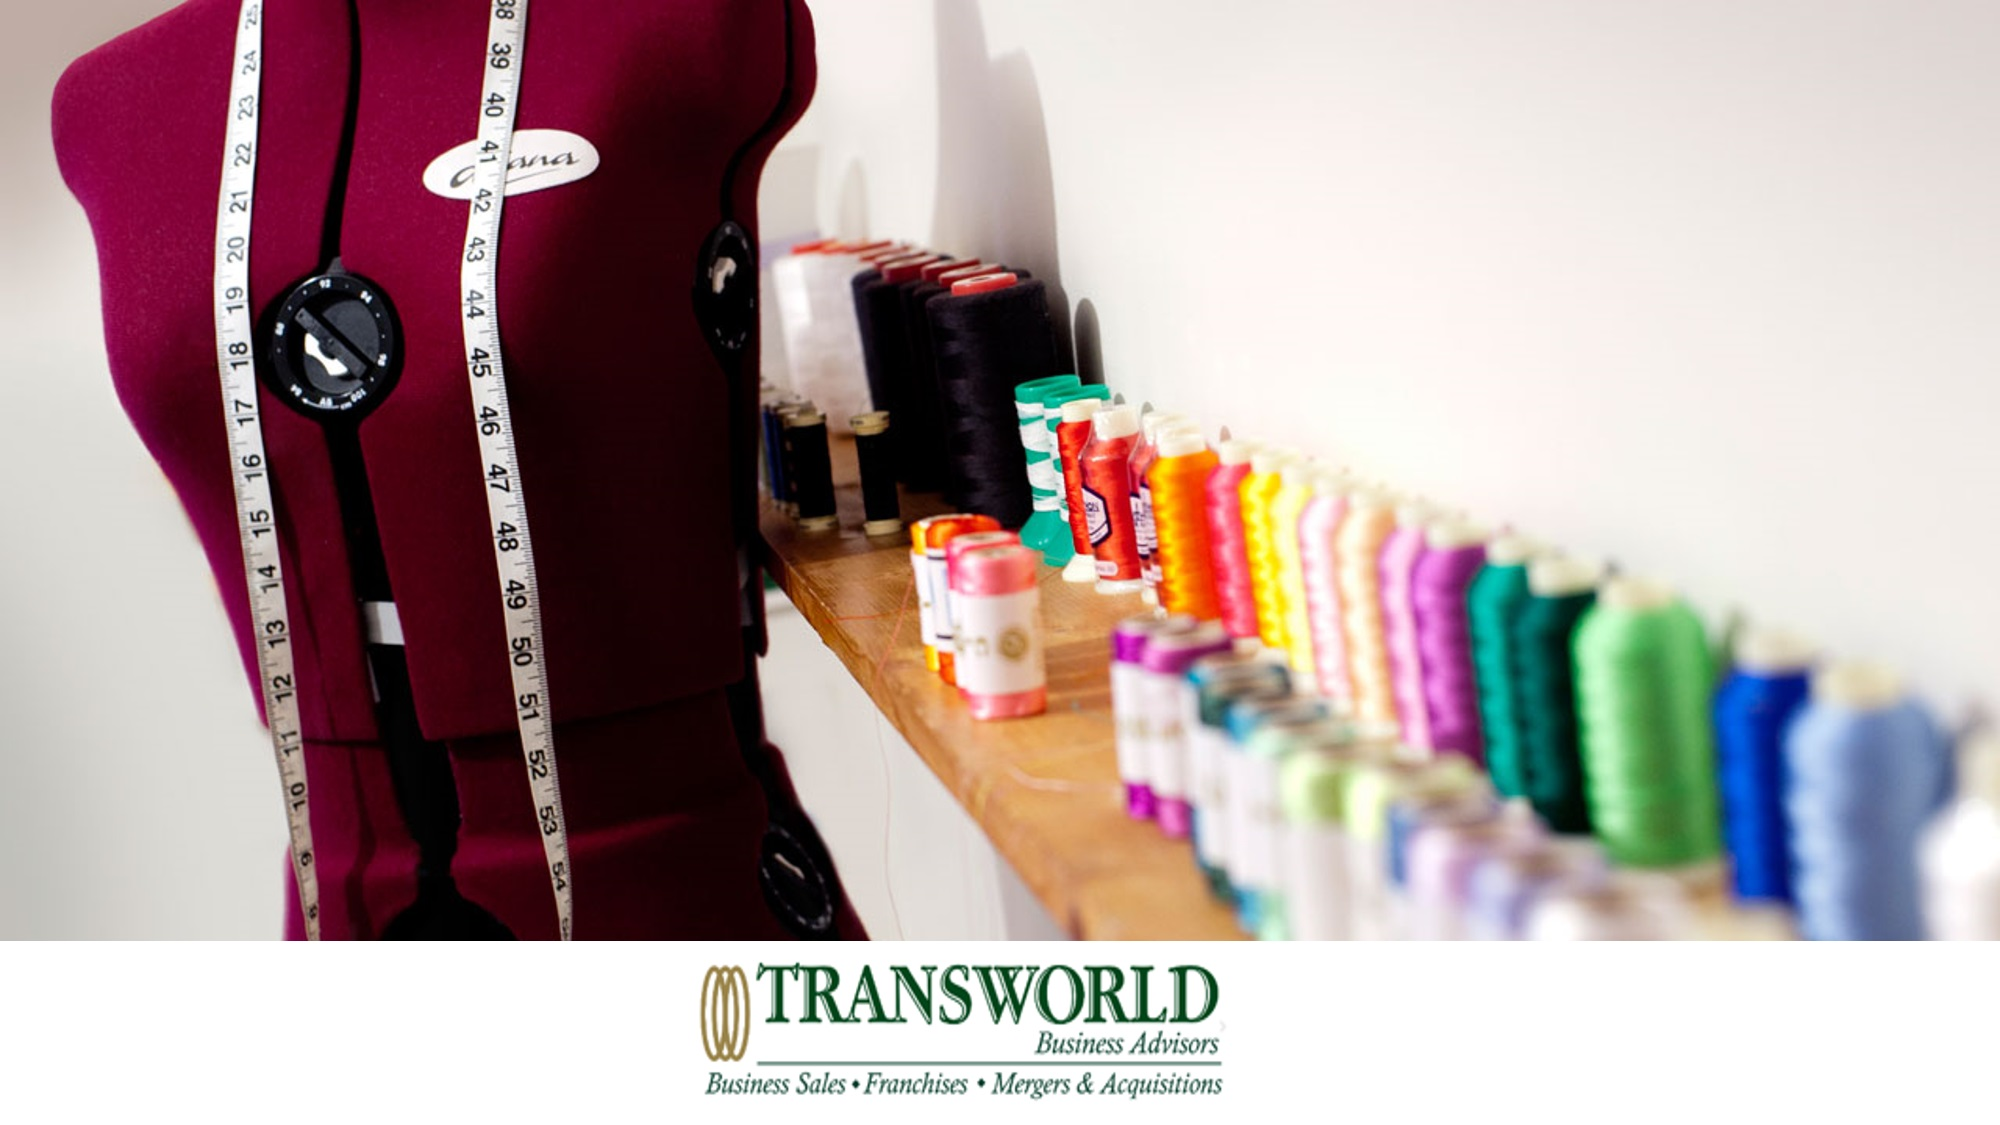 Price Reduced - Prestigious Fashion Alterations Business - High Margin Business